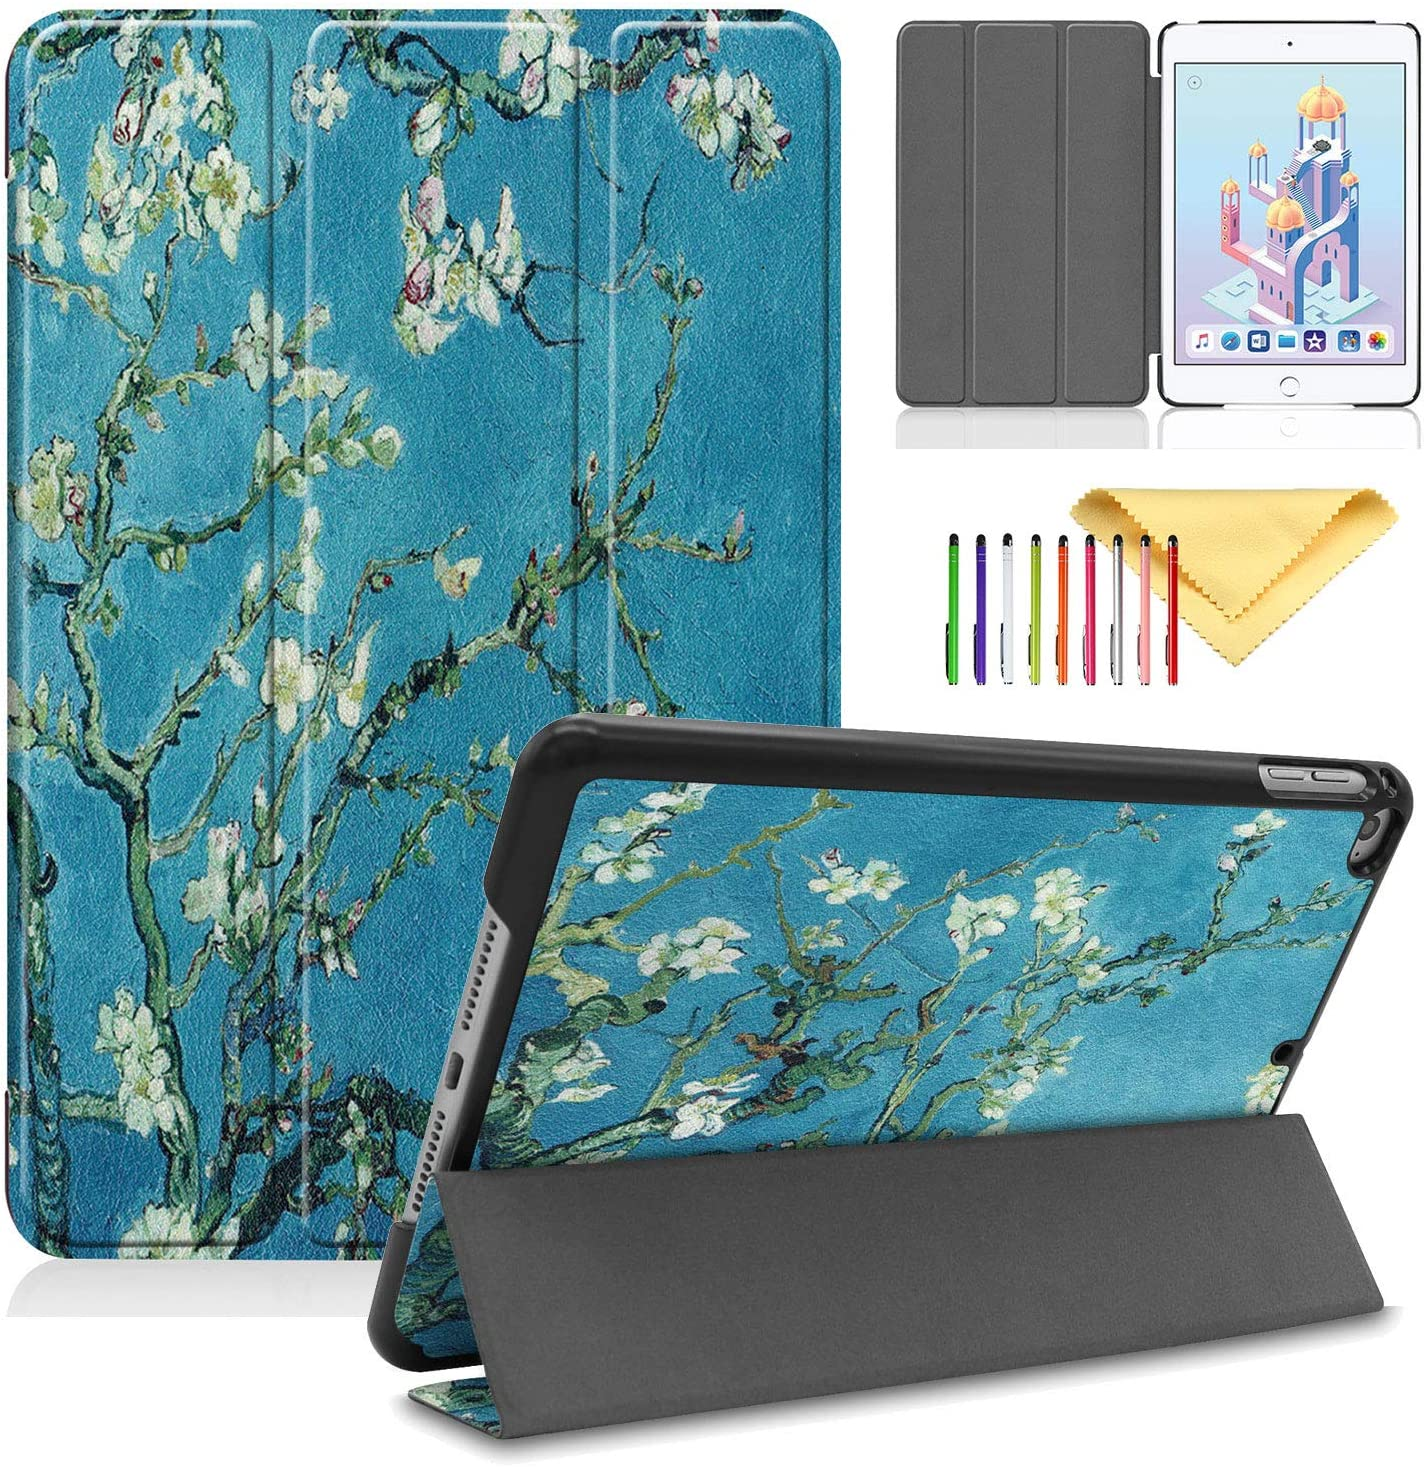 "New iPad Mini 5 Case 2019 (A2133 / A2124 / A2126), Cookk Lightweight Slim Trifold Stand Skin with Auto Sleep/Wake Hard Back Cover for Apple iPad Mini 5th Generation Latest Model 7.9"", Apricot Flower"